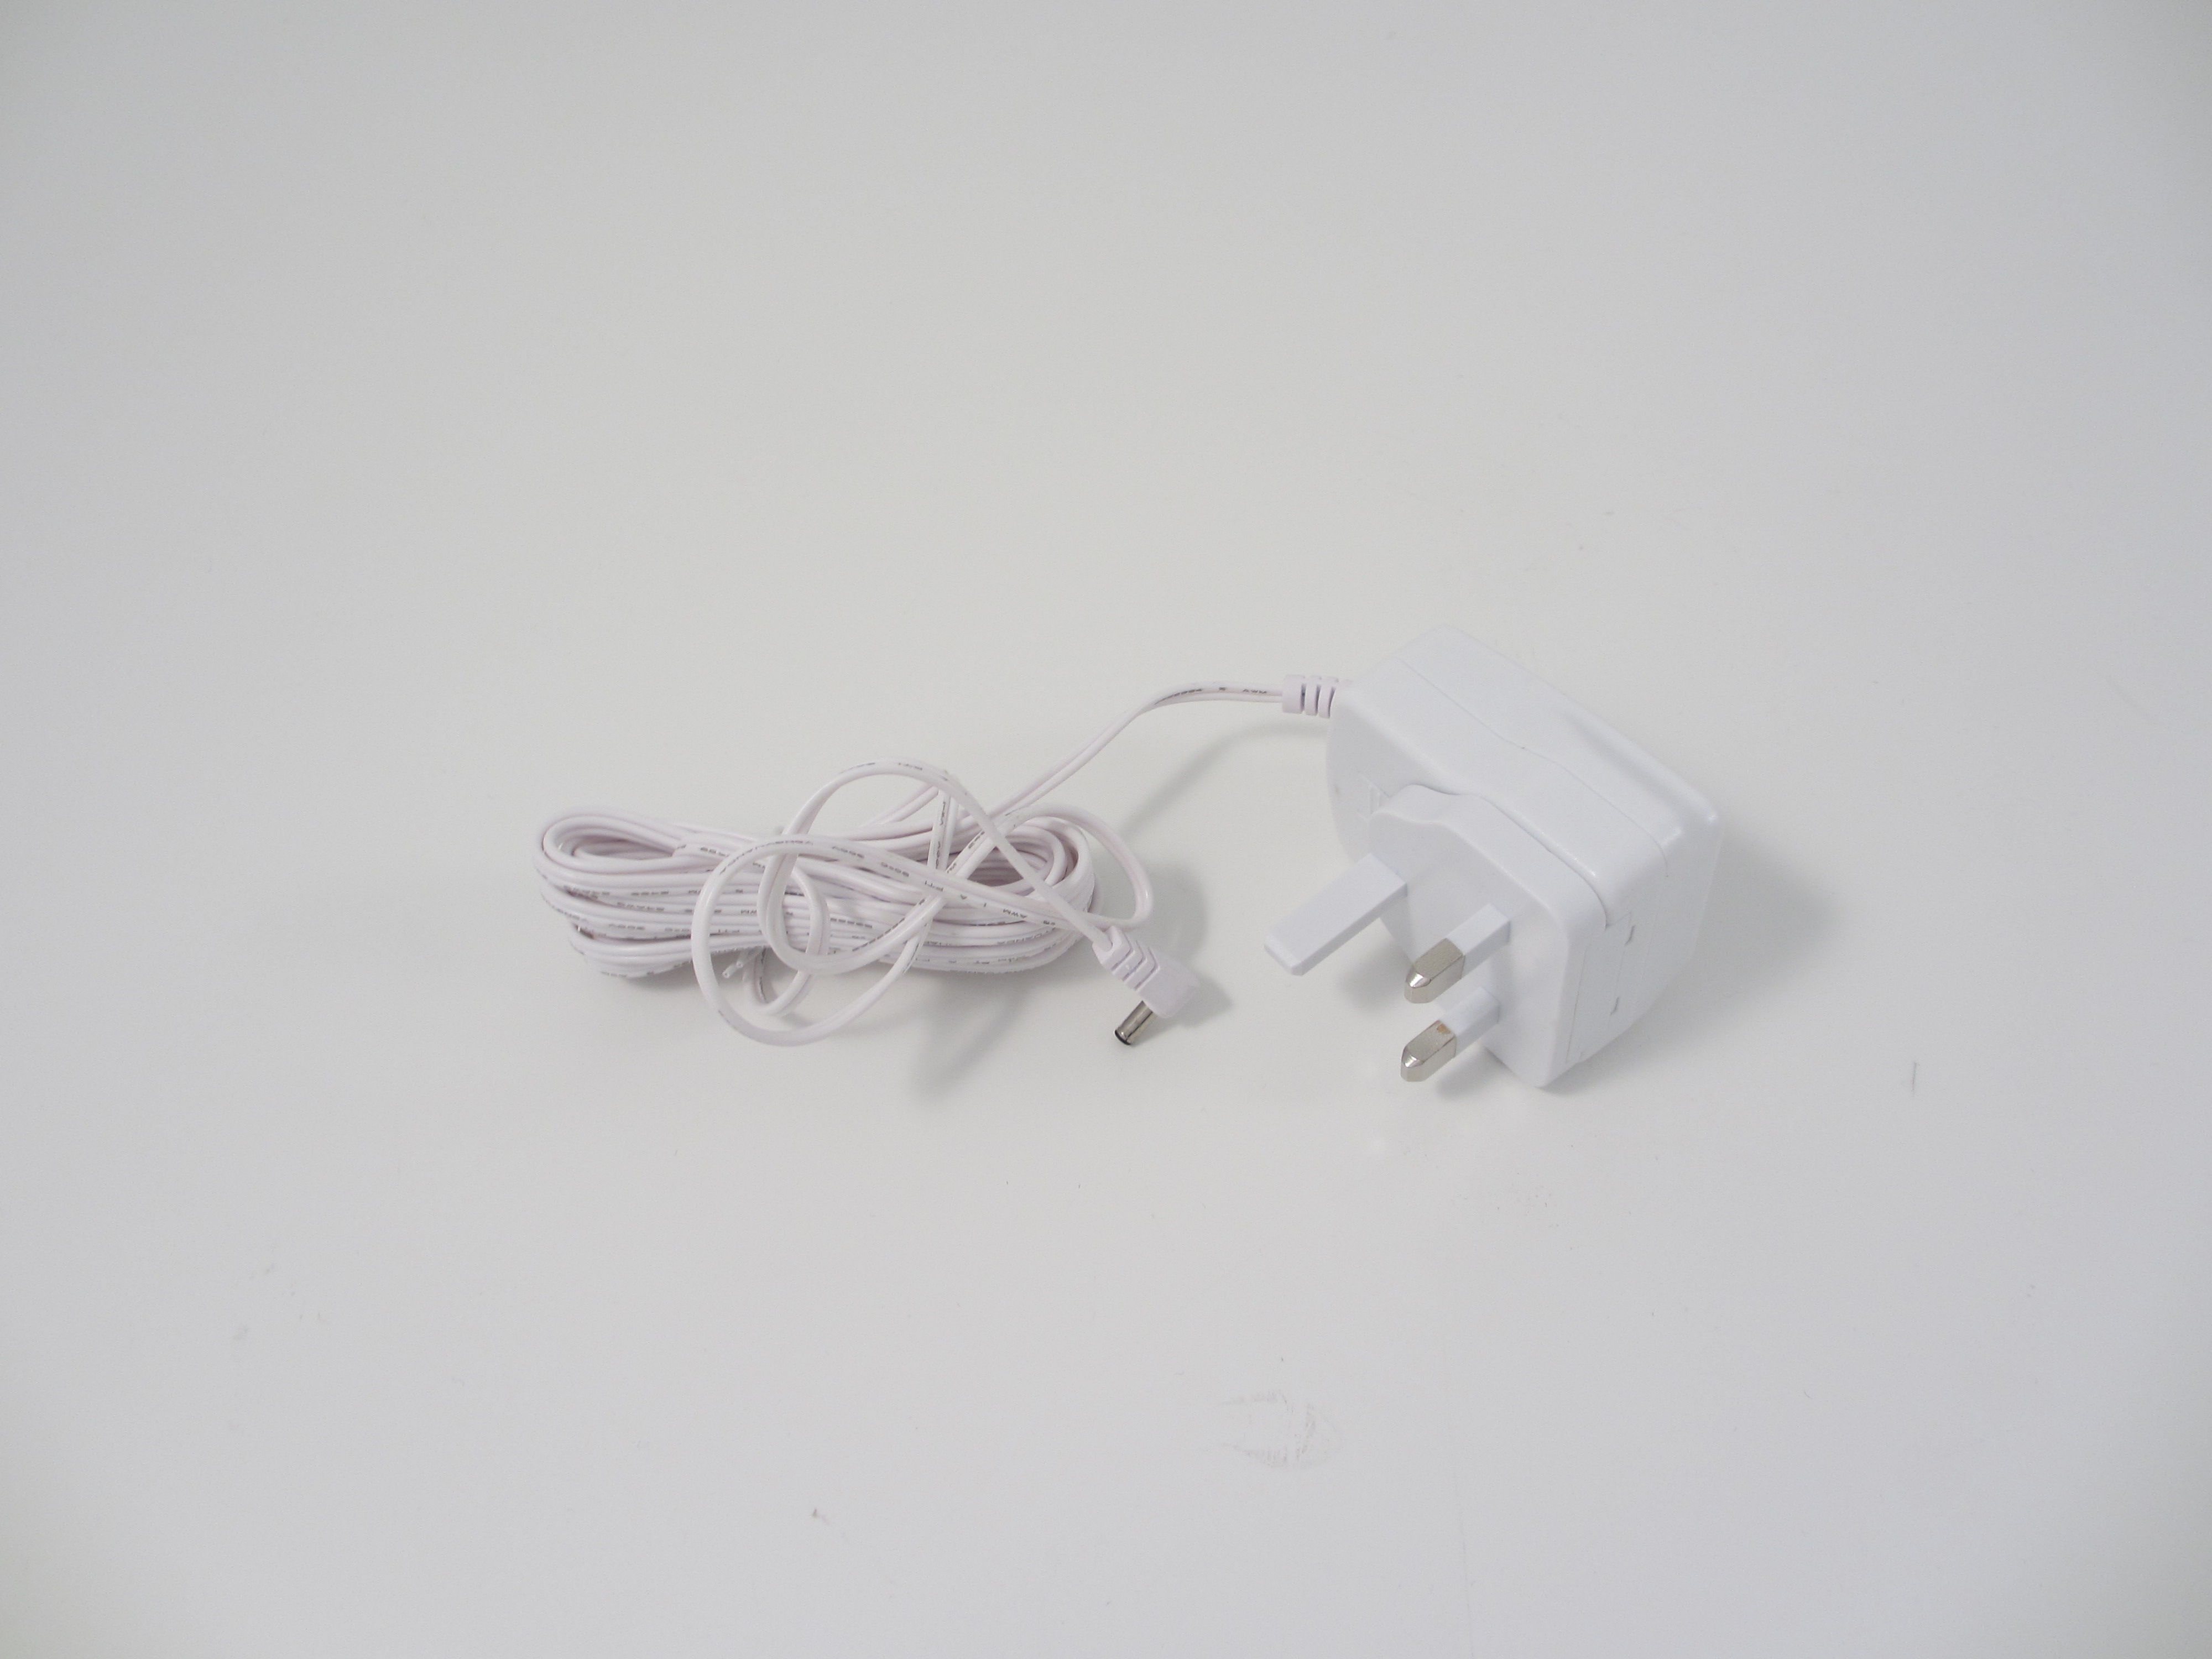 Power Adapter Replacement For Baby Unit For 29606 29596 29616 29586 29626 29246 29356 Summer Infant Baby Products